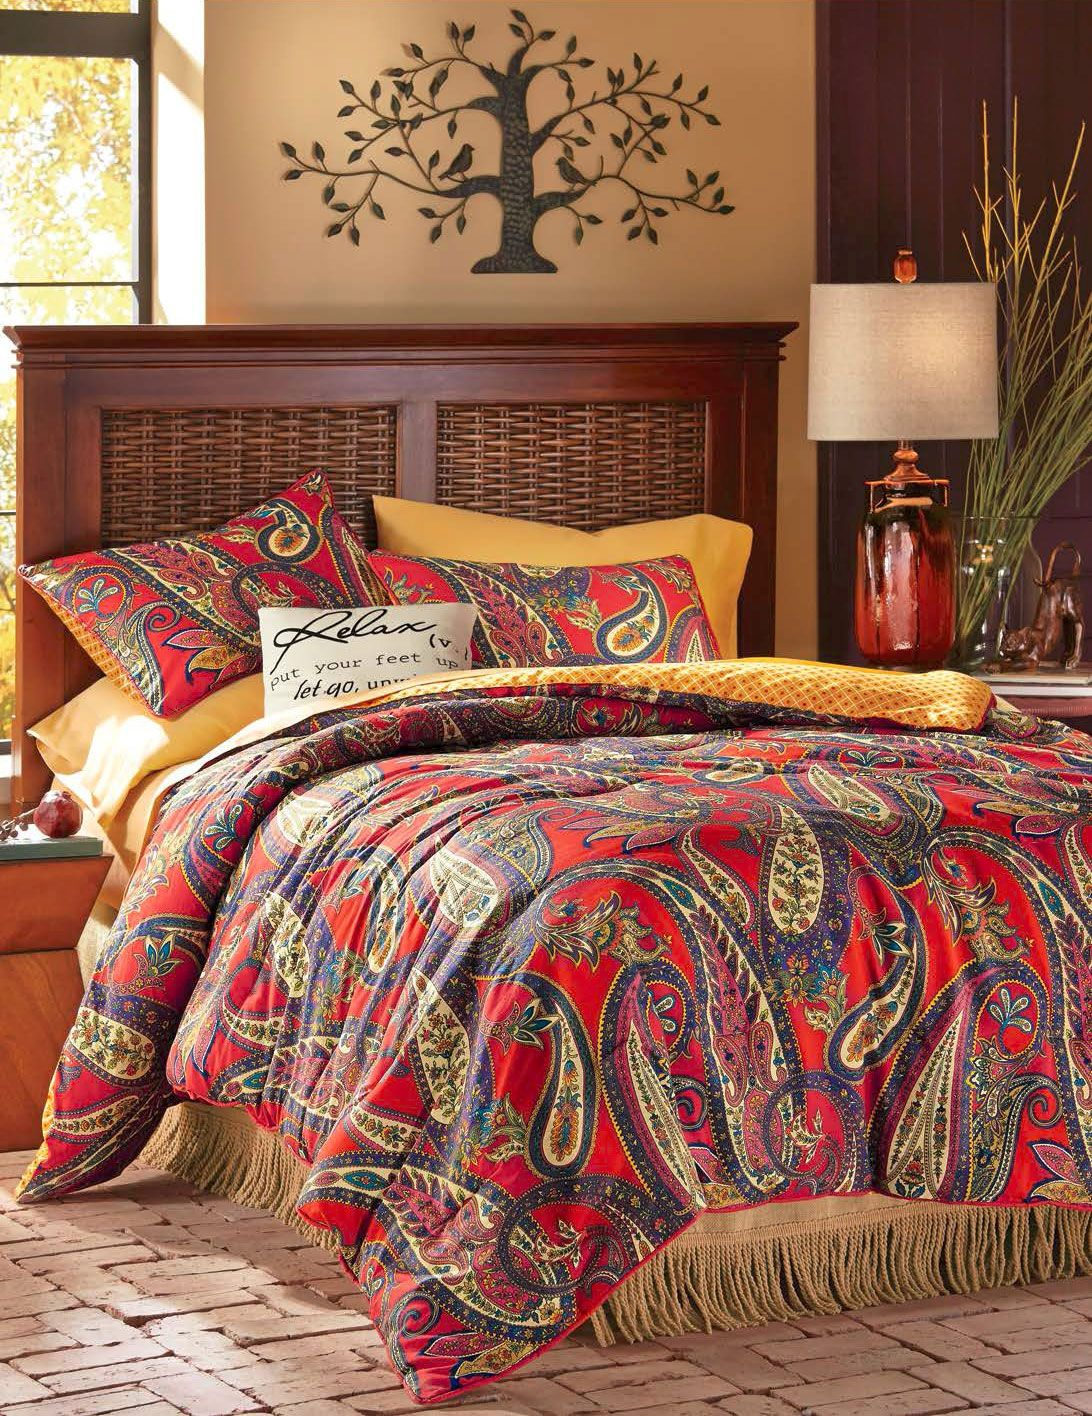 His hers master bedroom decorating ideas making the for His and her bedroom decorating ideas